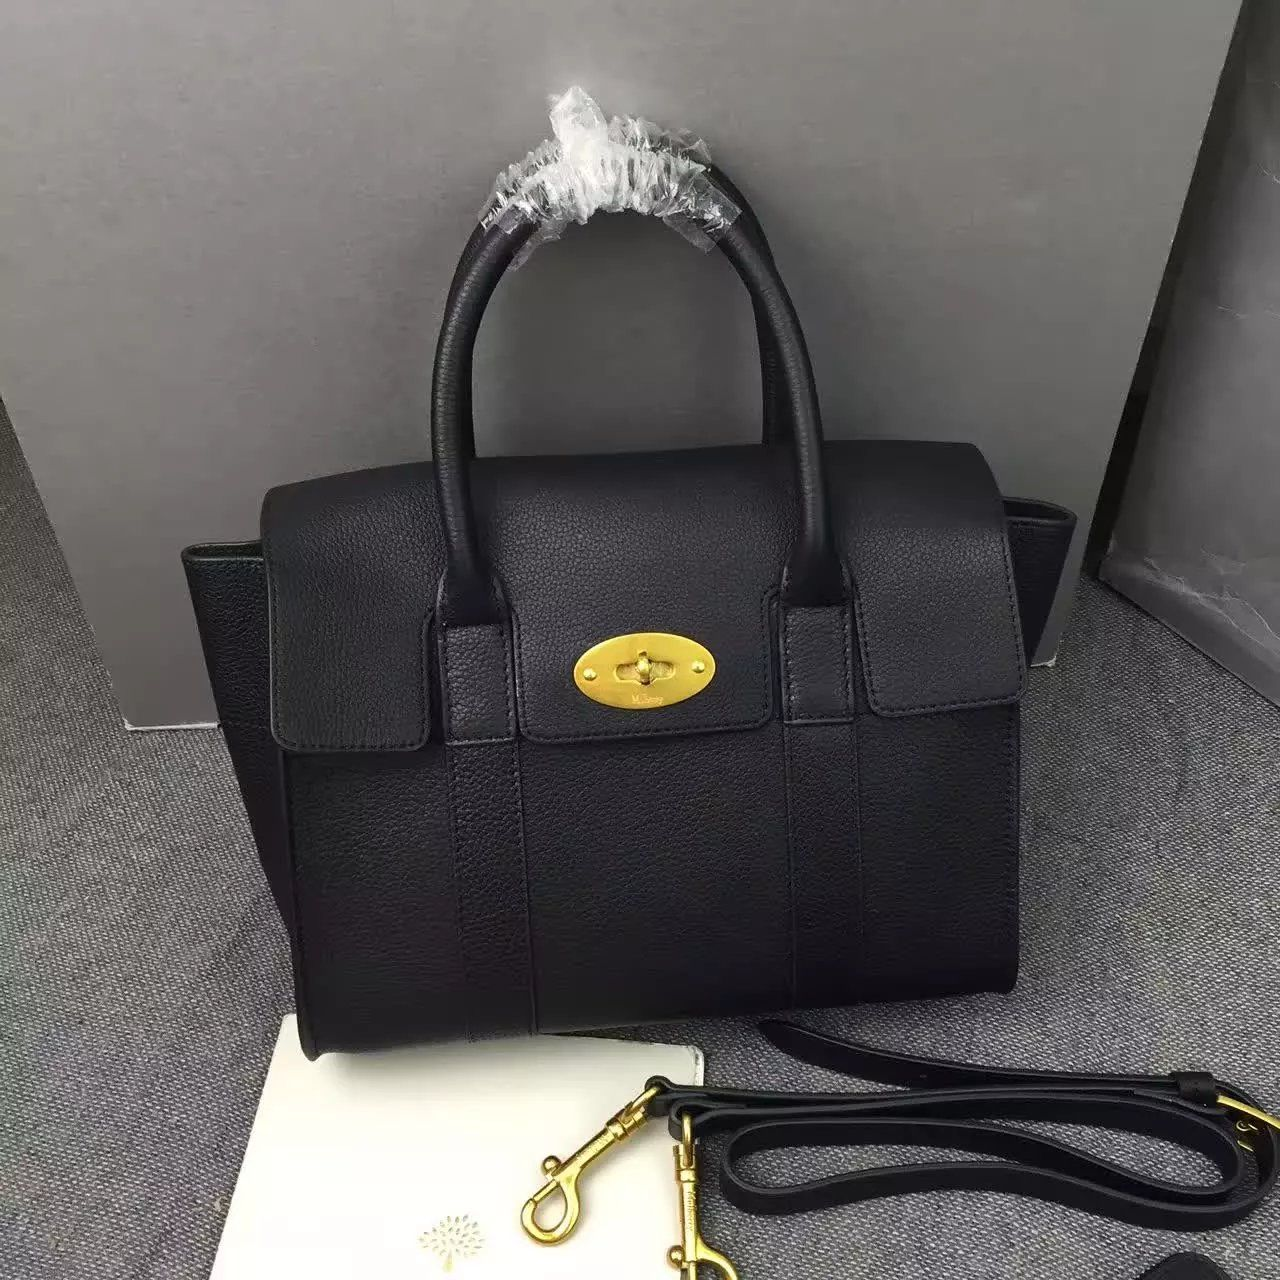 New Edition 2017 Mulberry Handbags Collection Outlet Uk Small Bayswater Black Natural Grain Leather